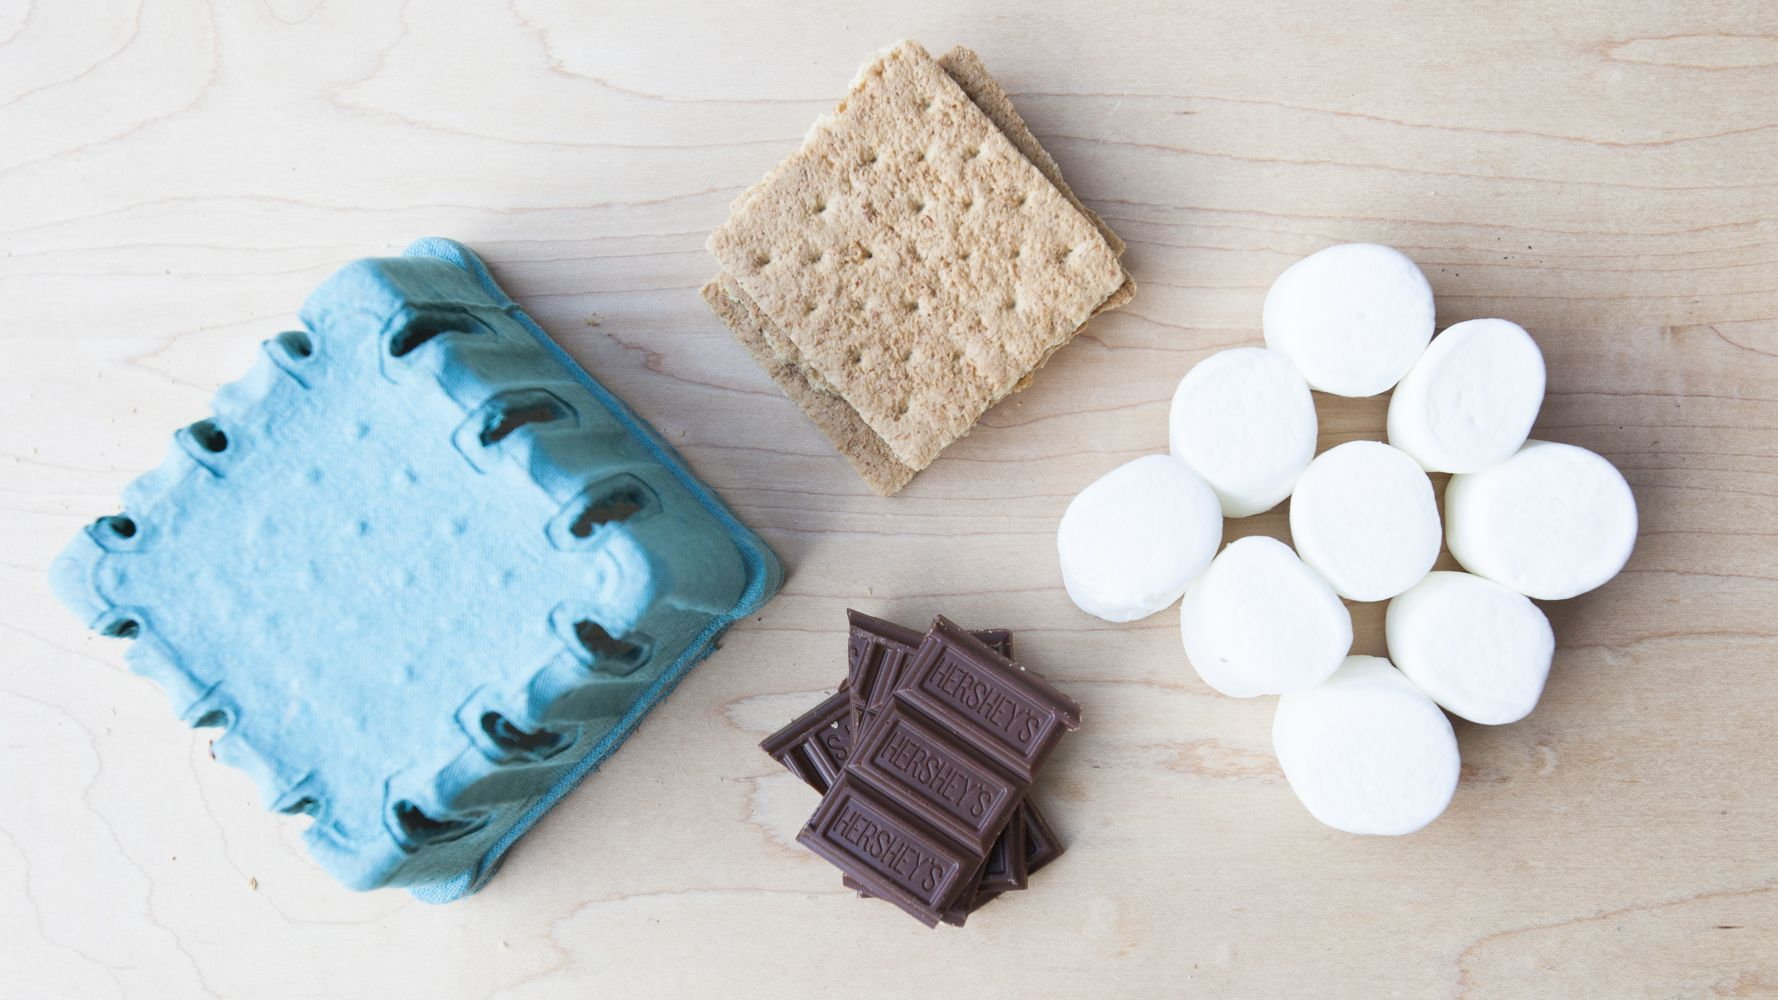 Smore Kits in Berry Cartons As Weding Favors